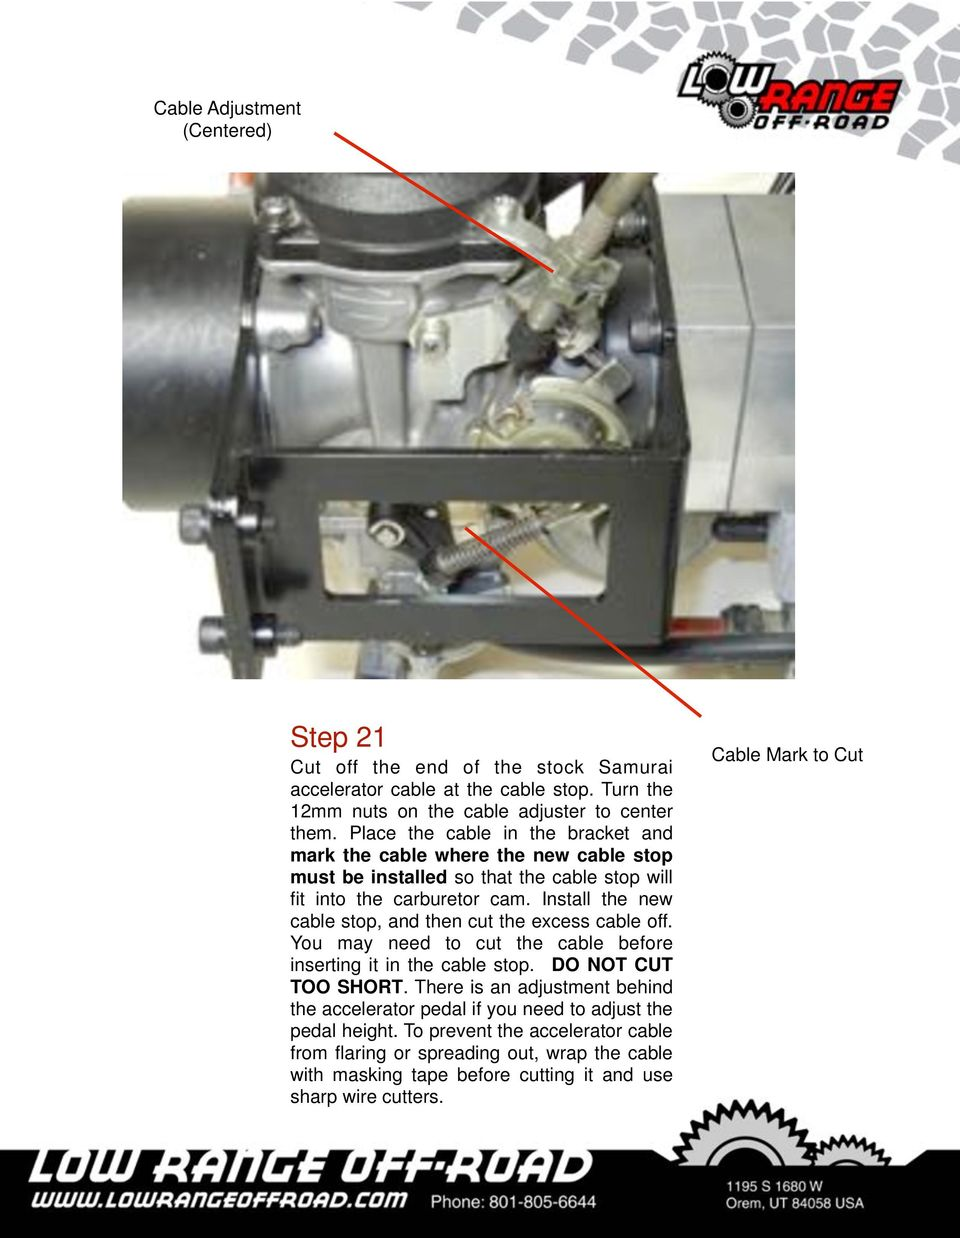 Installation Instructions Pdf Keihin Carburetor Diagram In Addition Honda Cv On Install The New Cable Stop And Then Cut Excess Off You May